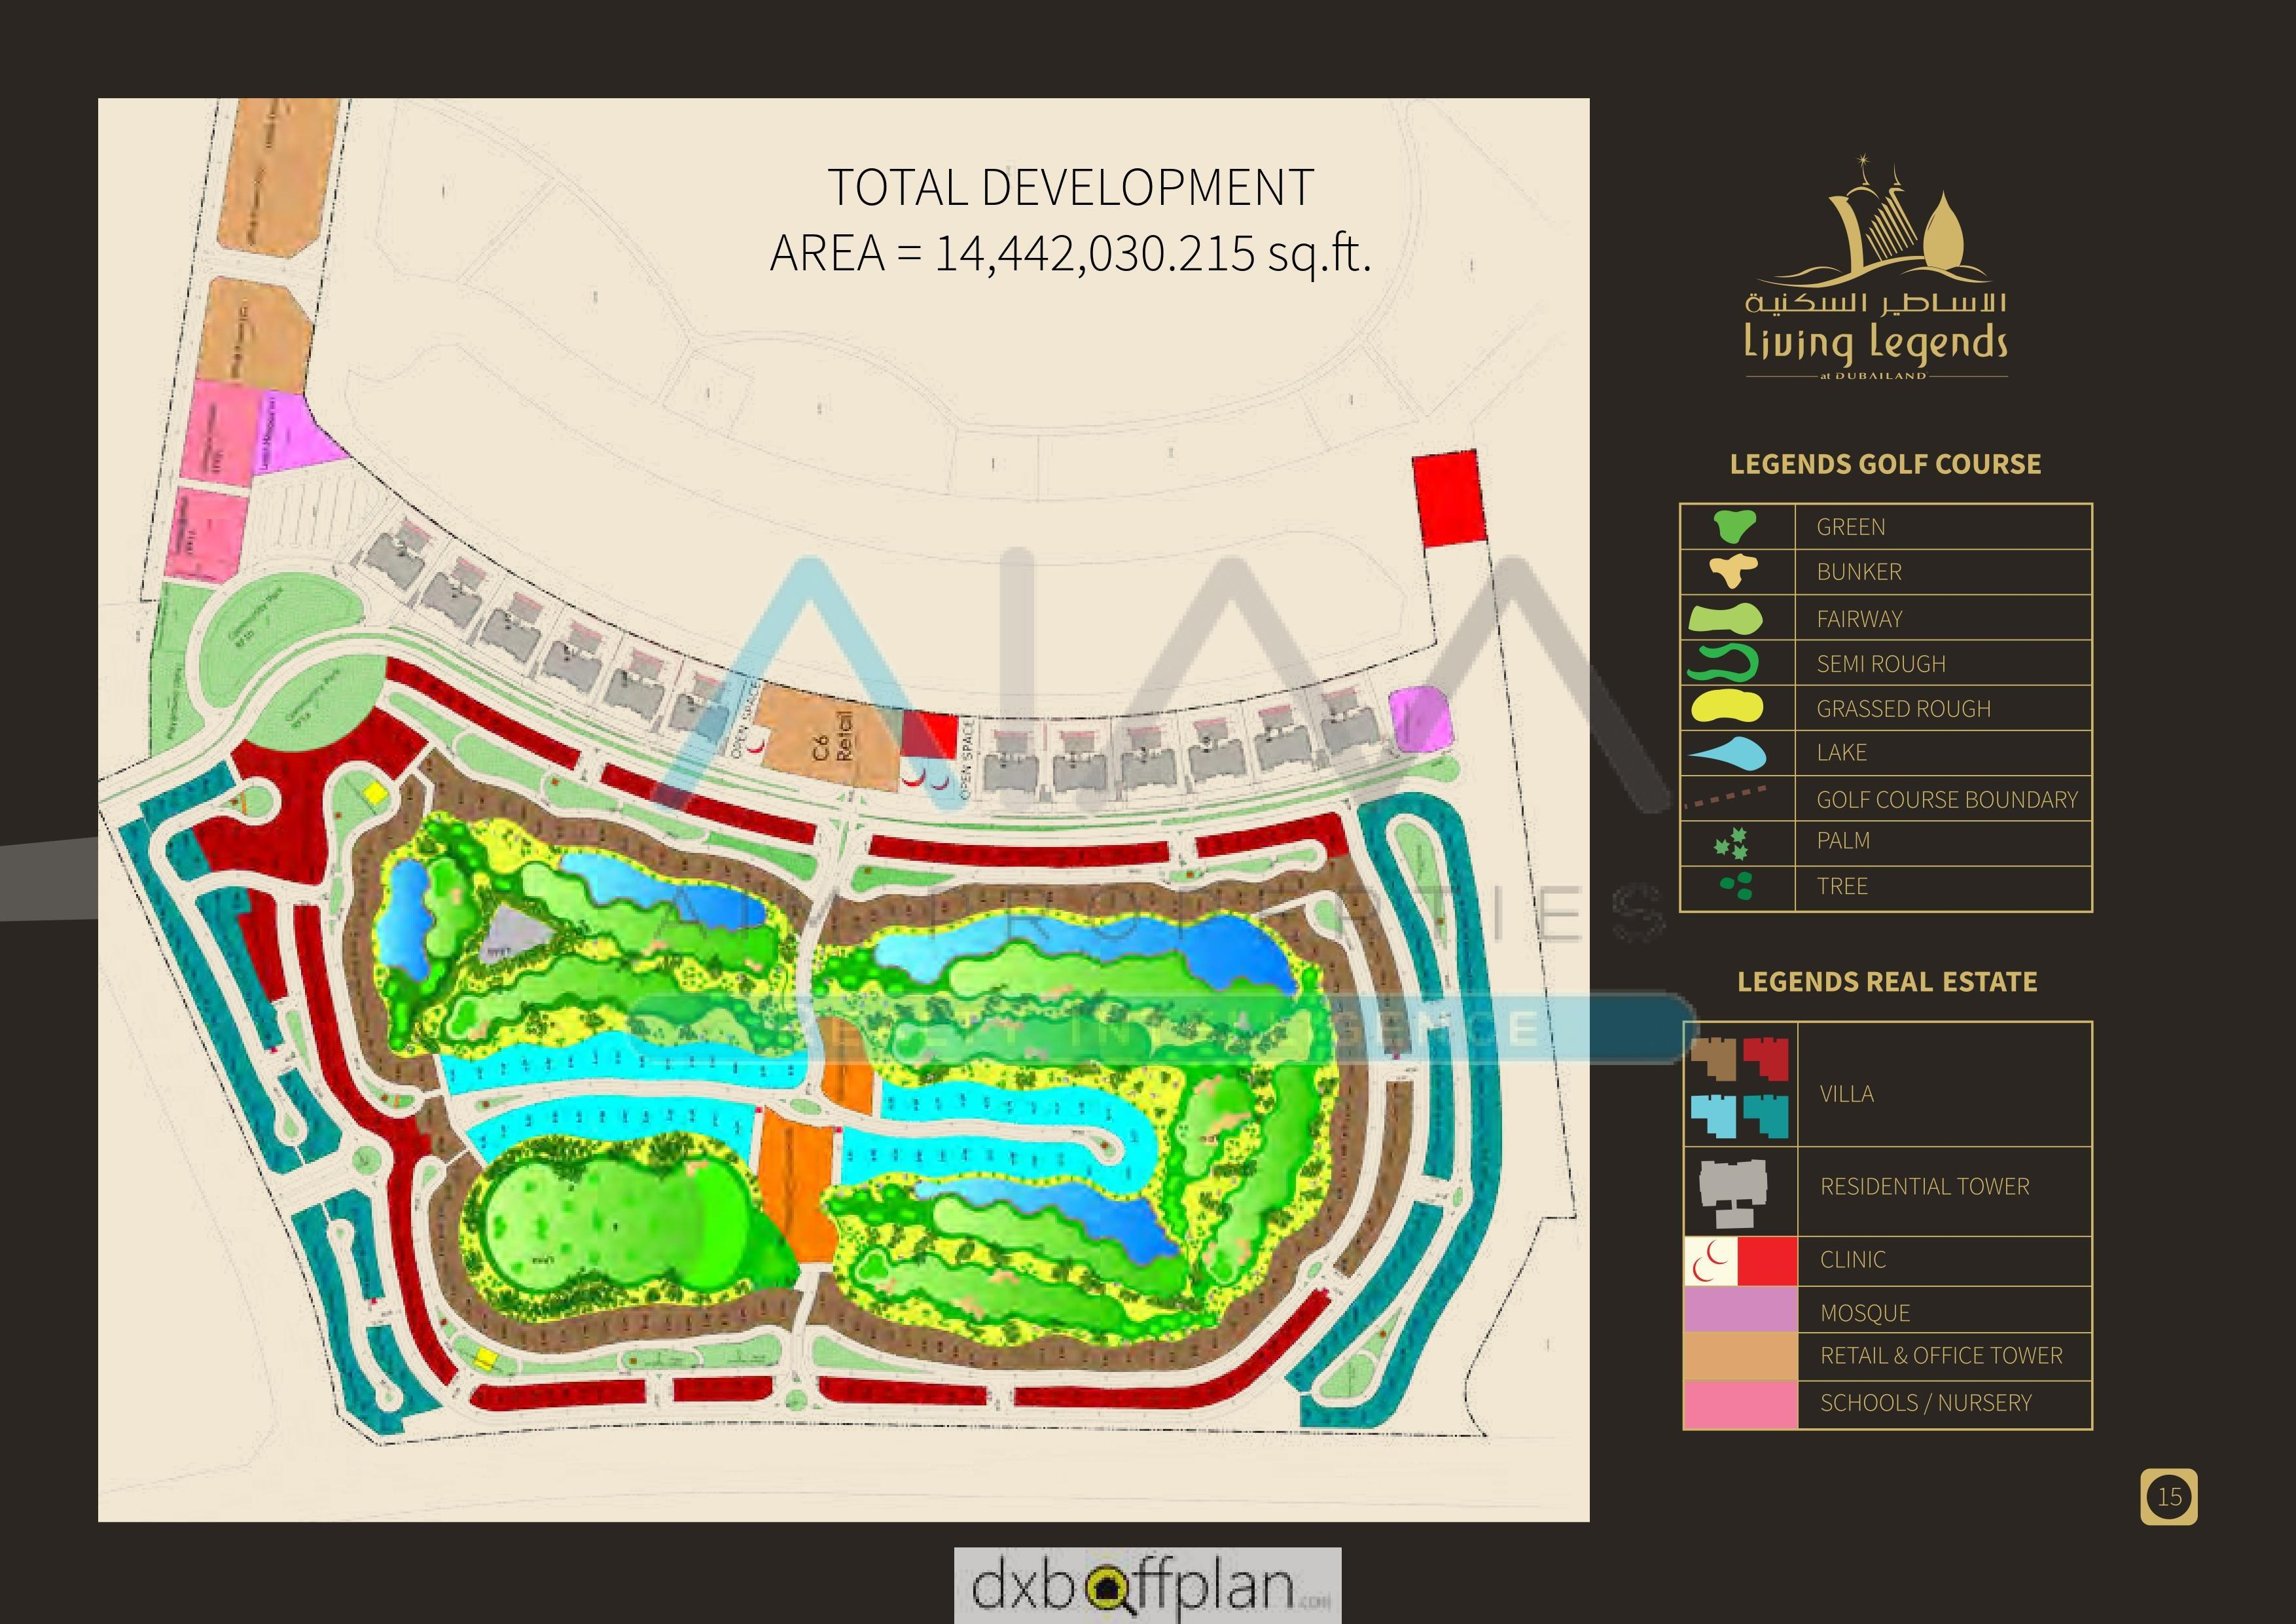 hot-offer-2bhk-with-swimming-pool-view_2.jpeg